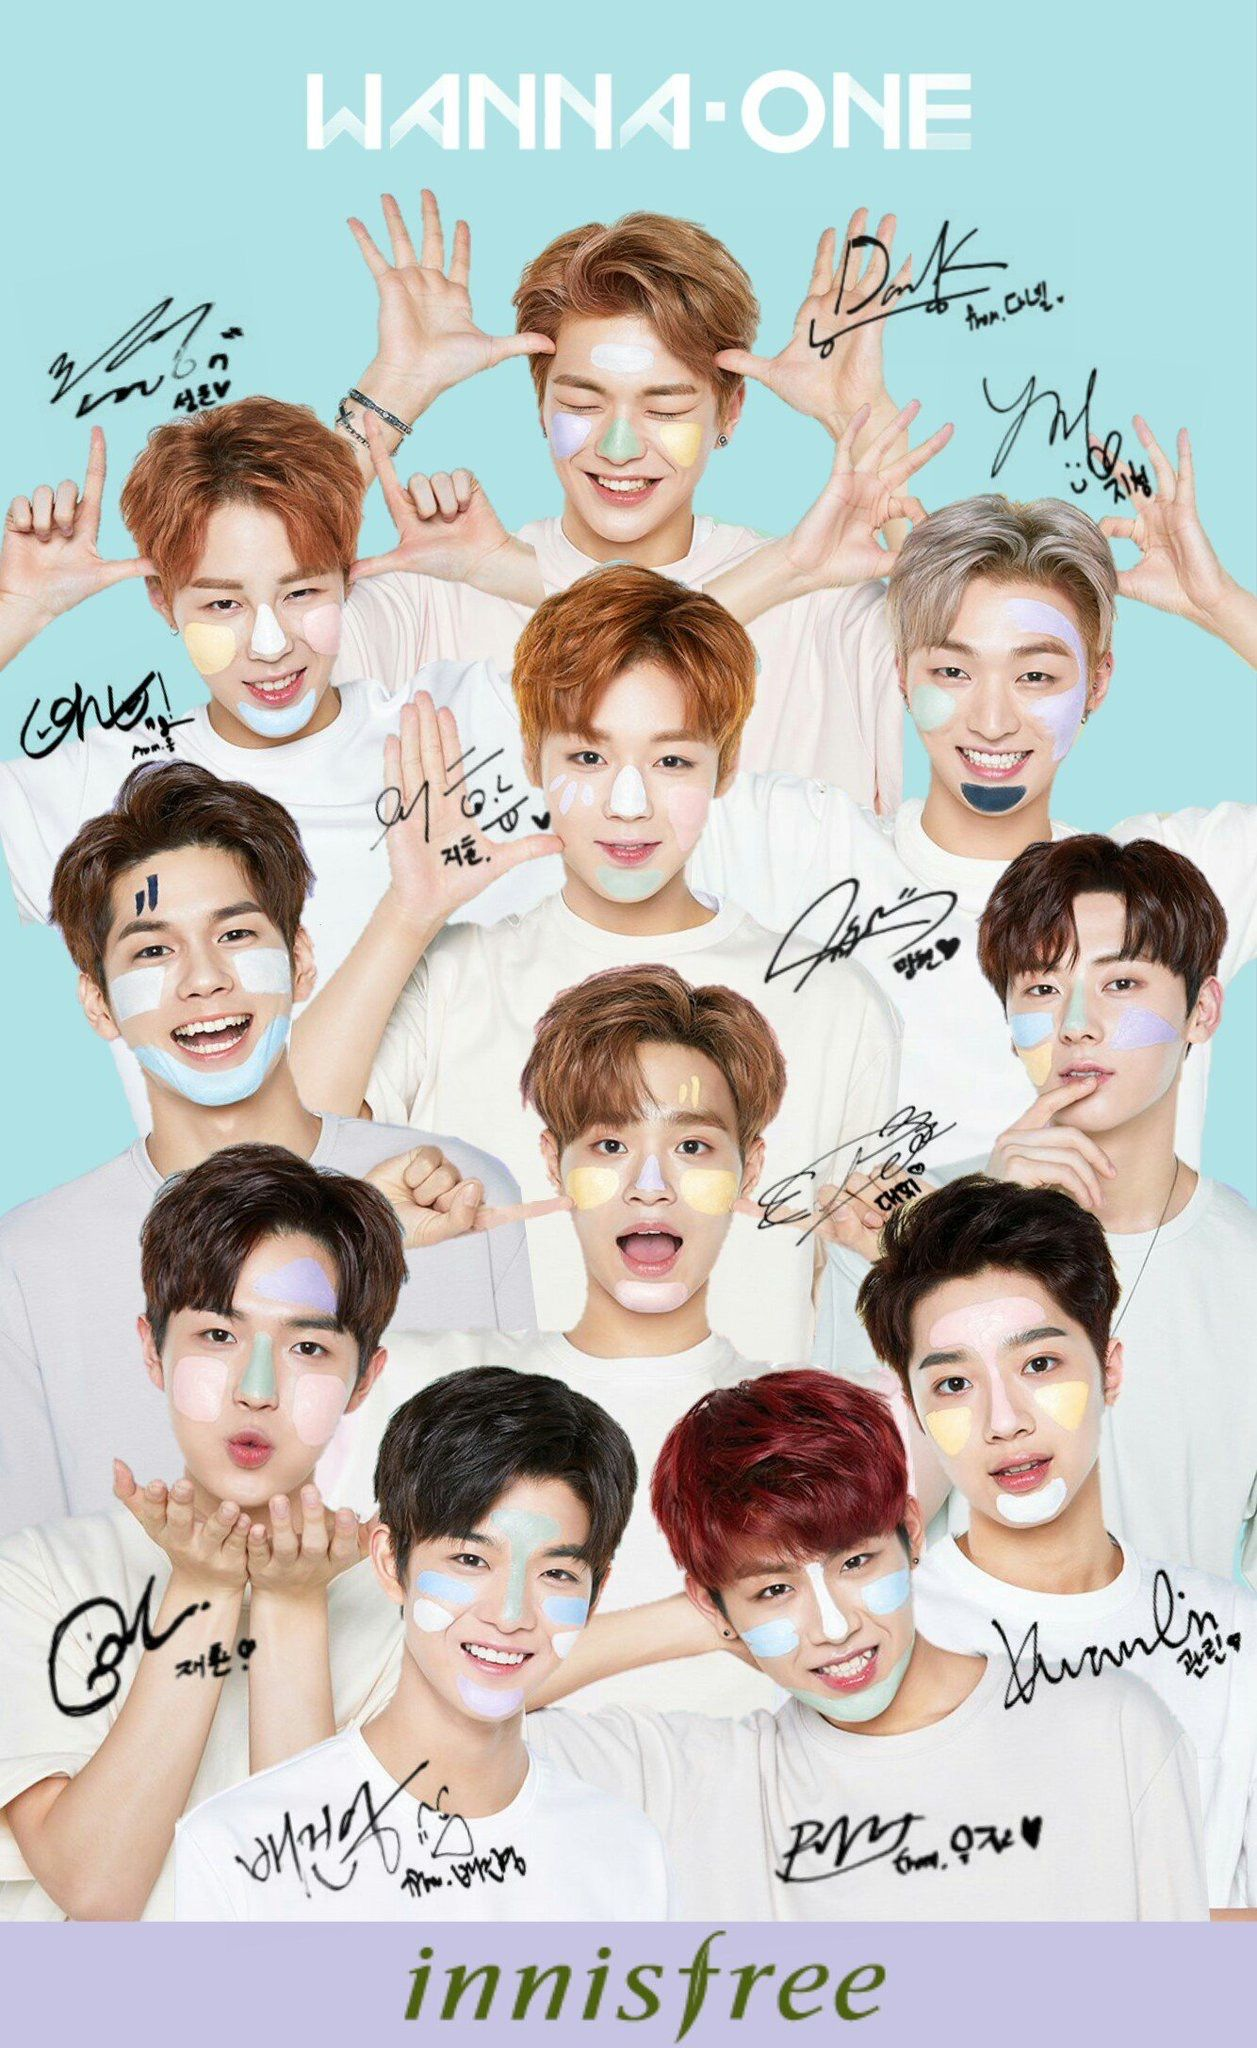 Wannaone Wallpaper Kpop Wallpaper Pinterest Produce 101 Kpop